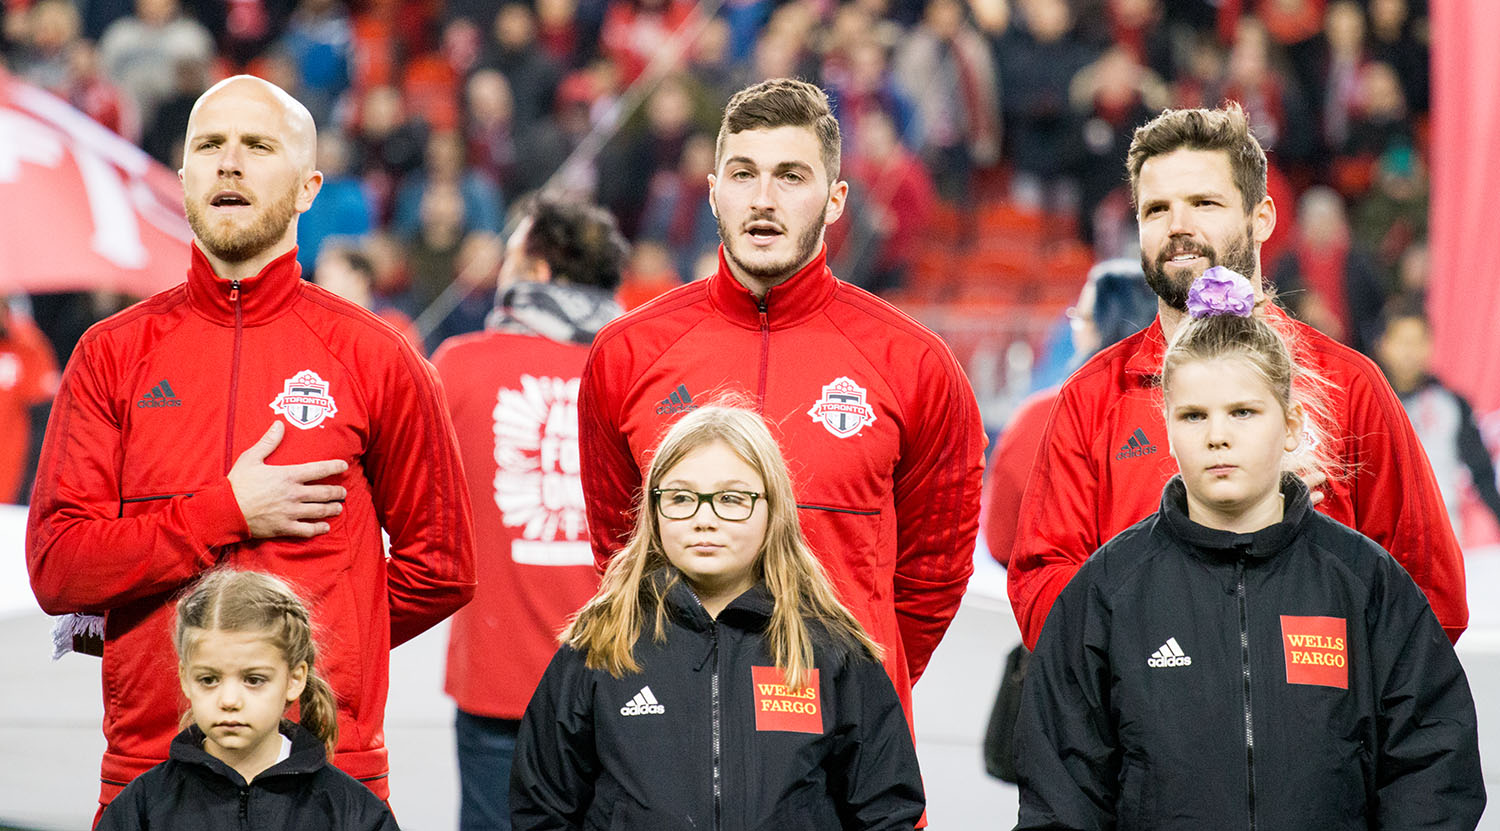 Toronto FC oberserving the national anthems just ahead of kickoff during the opening ceremonies.Image by Dennis Marciniak of denMAR Media.